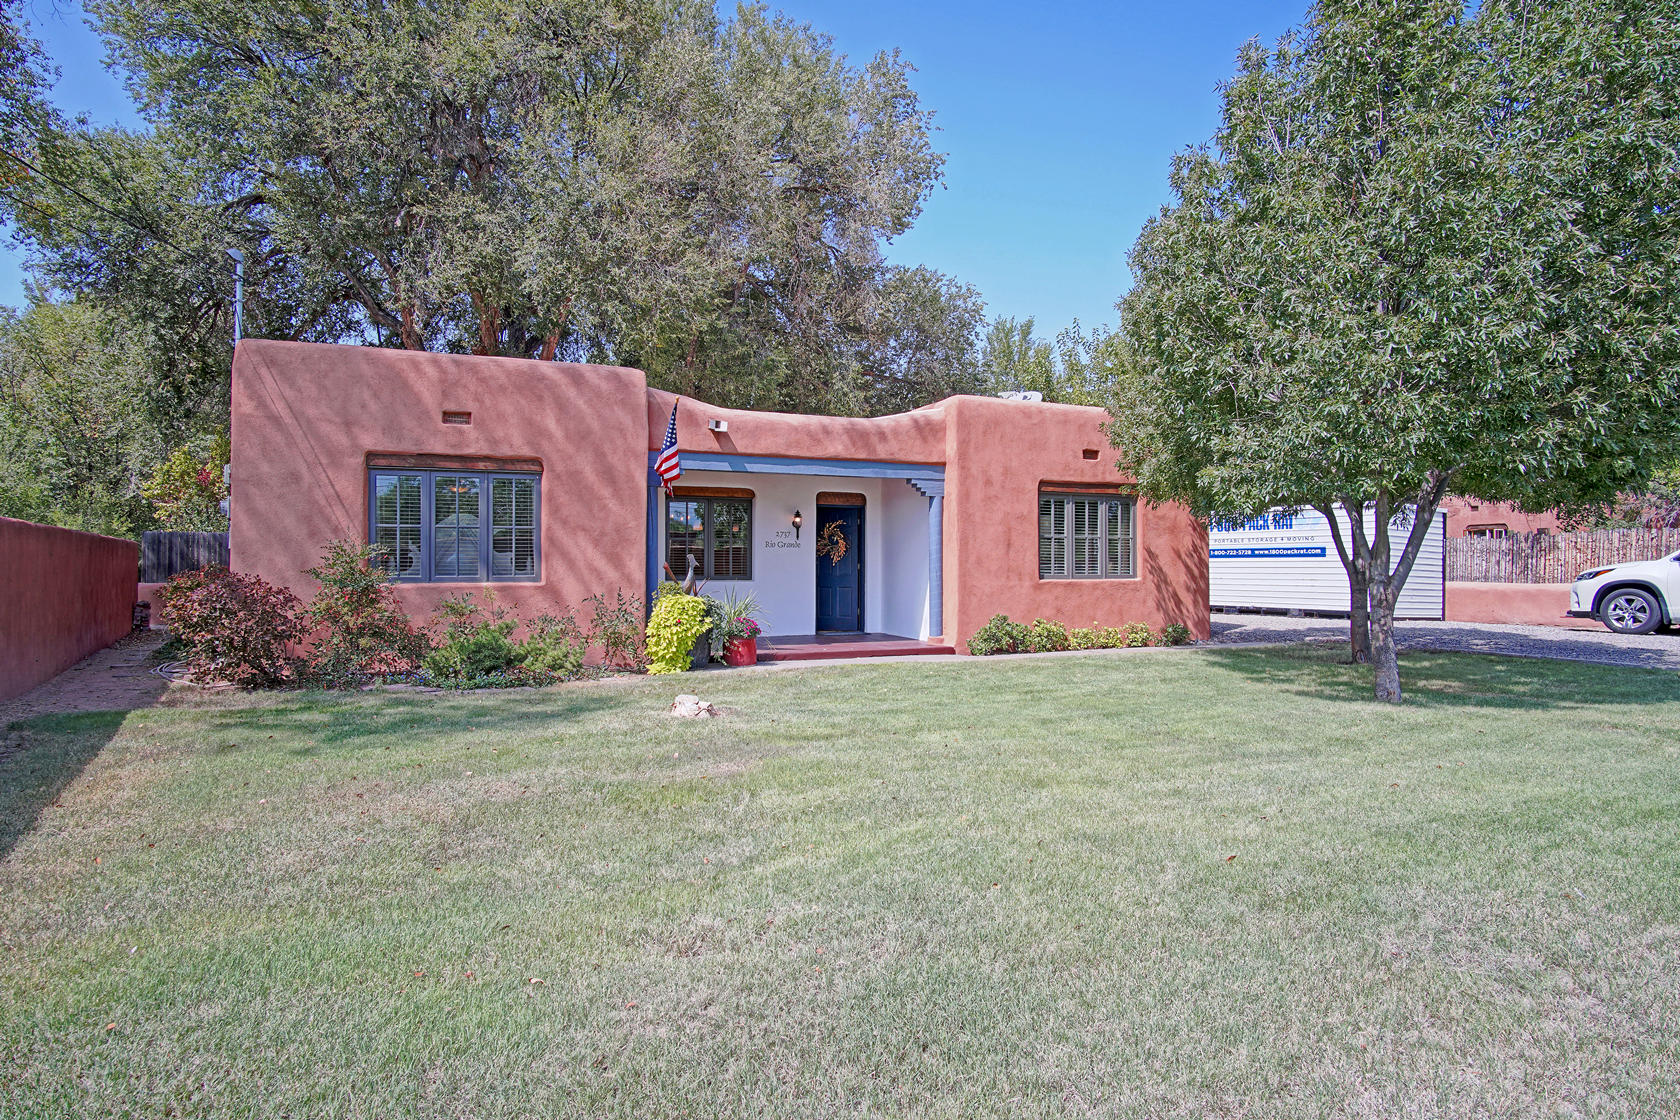 Quintessential Near North Valley Charmer!  Built 1941 +/-  on .33 ac Lot. 2165SF PLUS workshop/gym/studio 198SF.  A gourmet kitchen to die for! Viking Professional 6 burner duel fuel range. Viking refrigerator/hood/ microwave. Bosch dishwasher. Granite counters & custom cherry Shaker style cabinets!   4 bdrms (3 on southside of home & 1 on Northside.)  2  baths. Formal Living room w/ wood burning fireplace & original hardwood floors. Huge family room  w/ brick floors. Separate laundry room.  Gorgeous backyard w/ grass & large trees is fenced. Chicken coop ready for new chicks (w/ fenced yard, too)  Covered Carport  plus plenty of parking behind gate for all your toys.  Tons of parking for friends & family in driveway. TPO roof.  Evap. cooling. Inspections/ Repairs completed. A Must-See!!